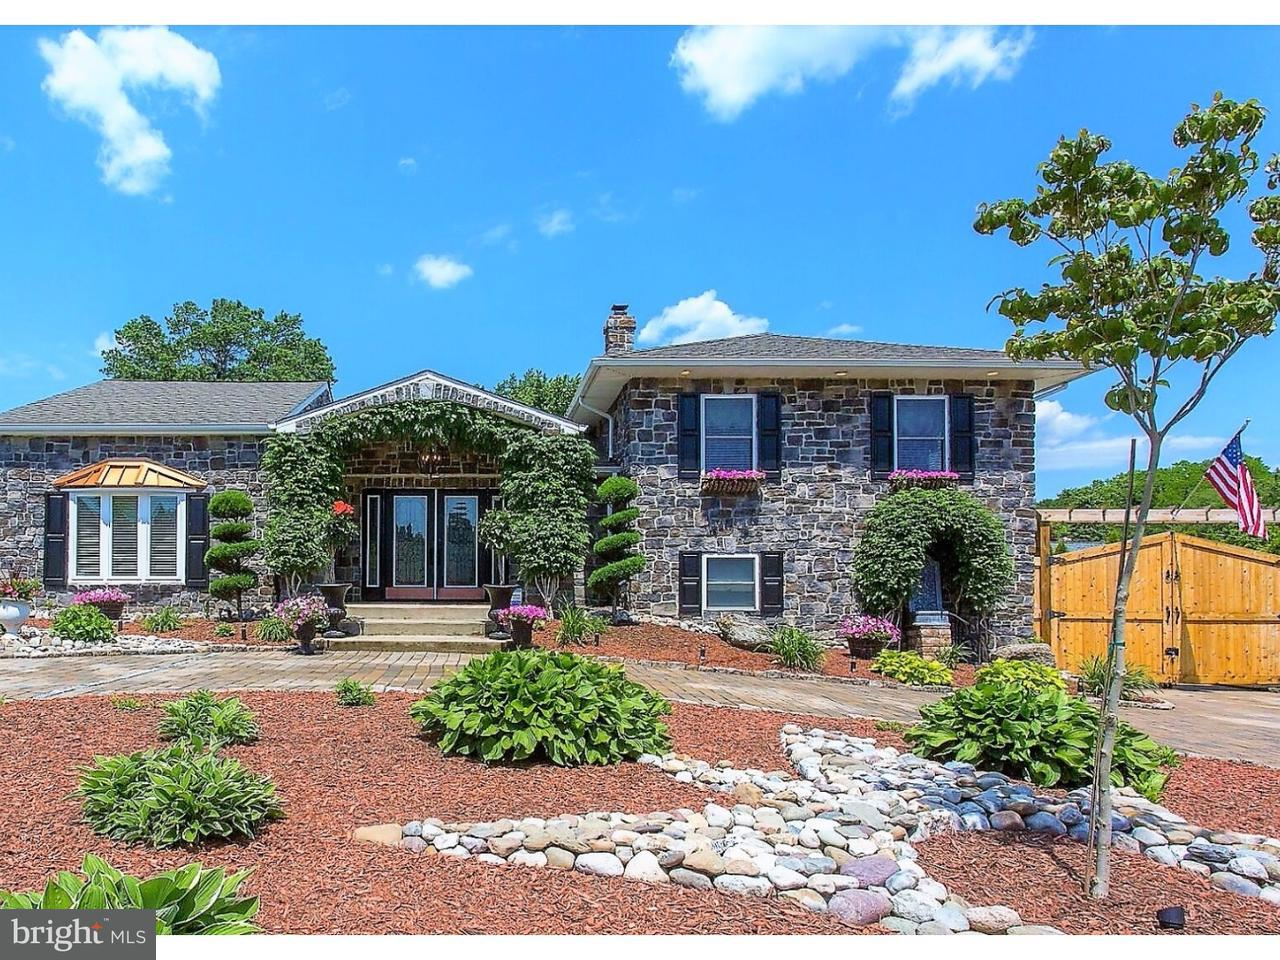 Single Family Home for Sale at 302 S NEW ARDMORE Avenue Broomall, Pennsylvania 19008 United States